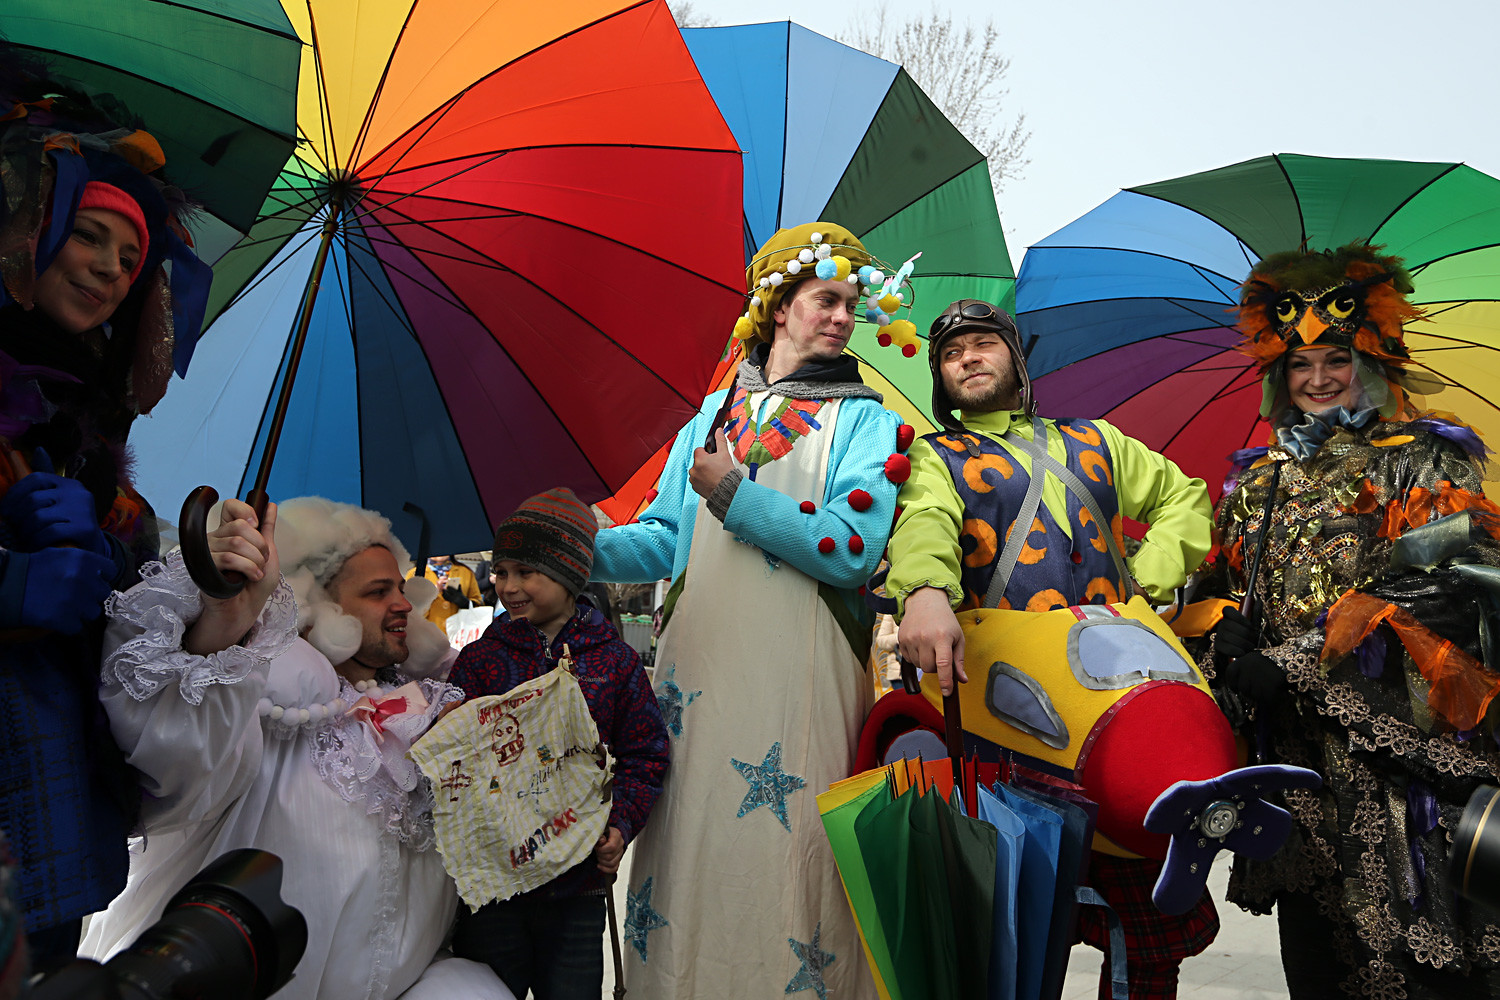 Participants in a spring parade held as part of the Easter Gift festival in Tverskoy Boulevard.